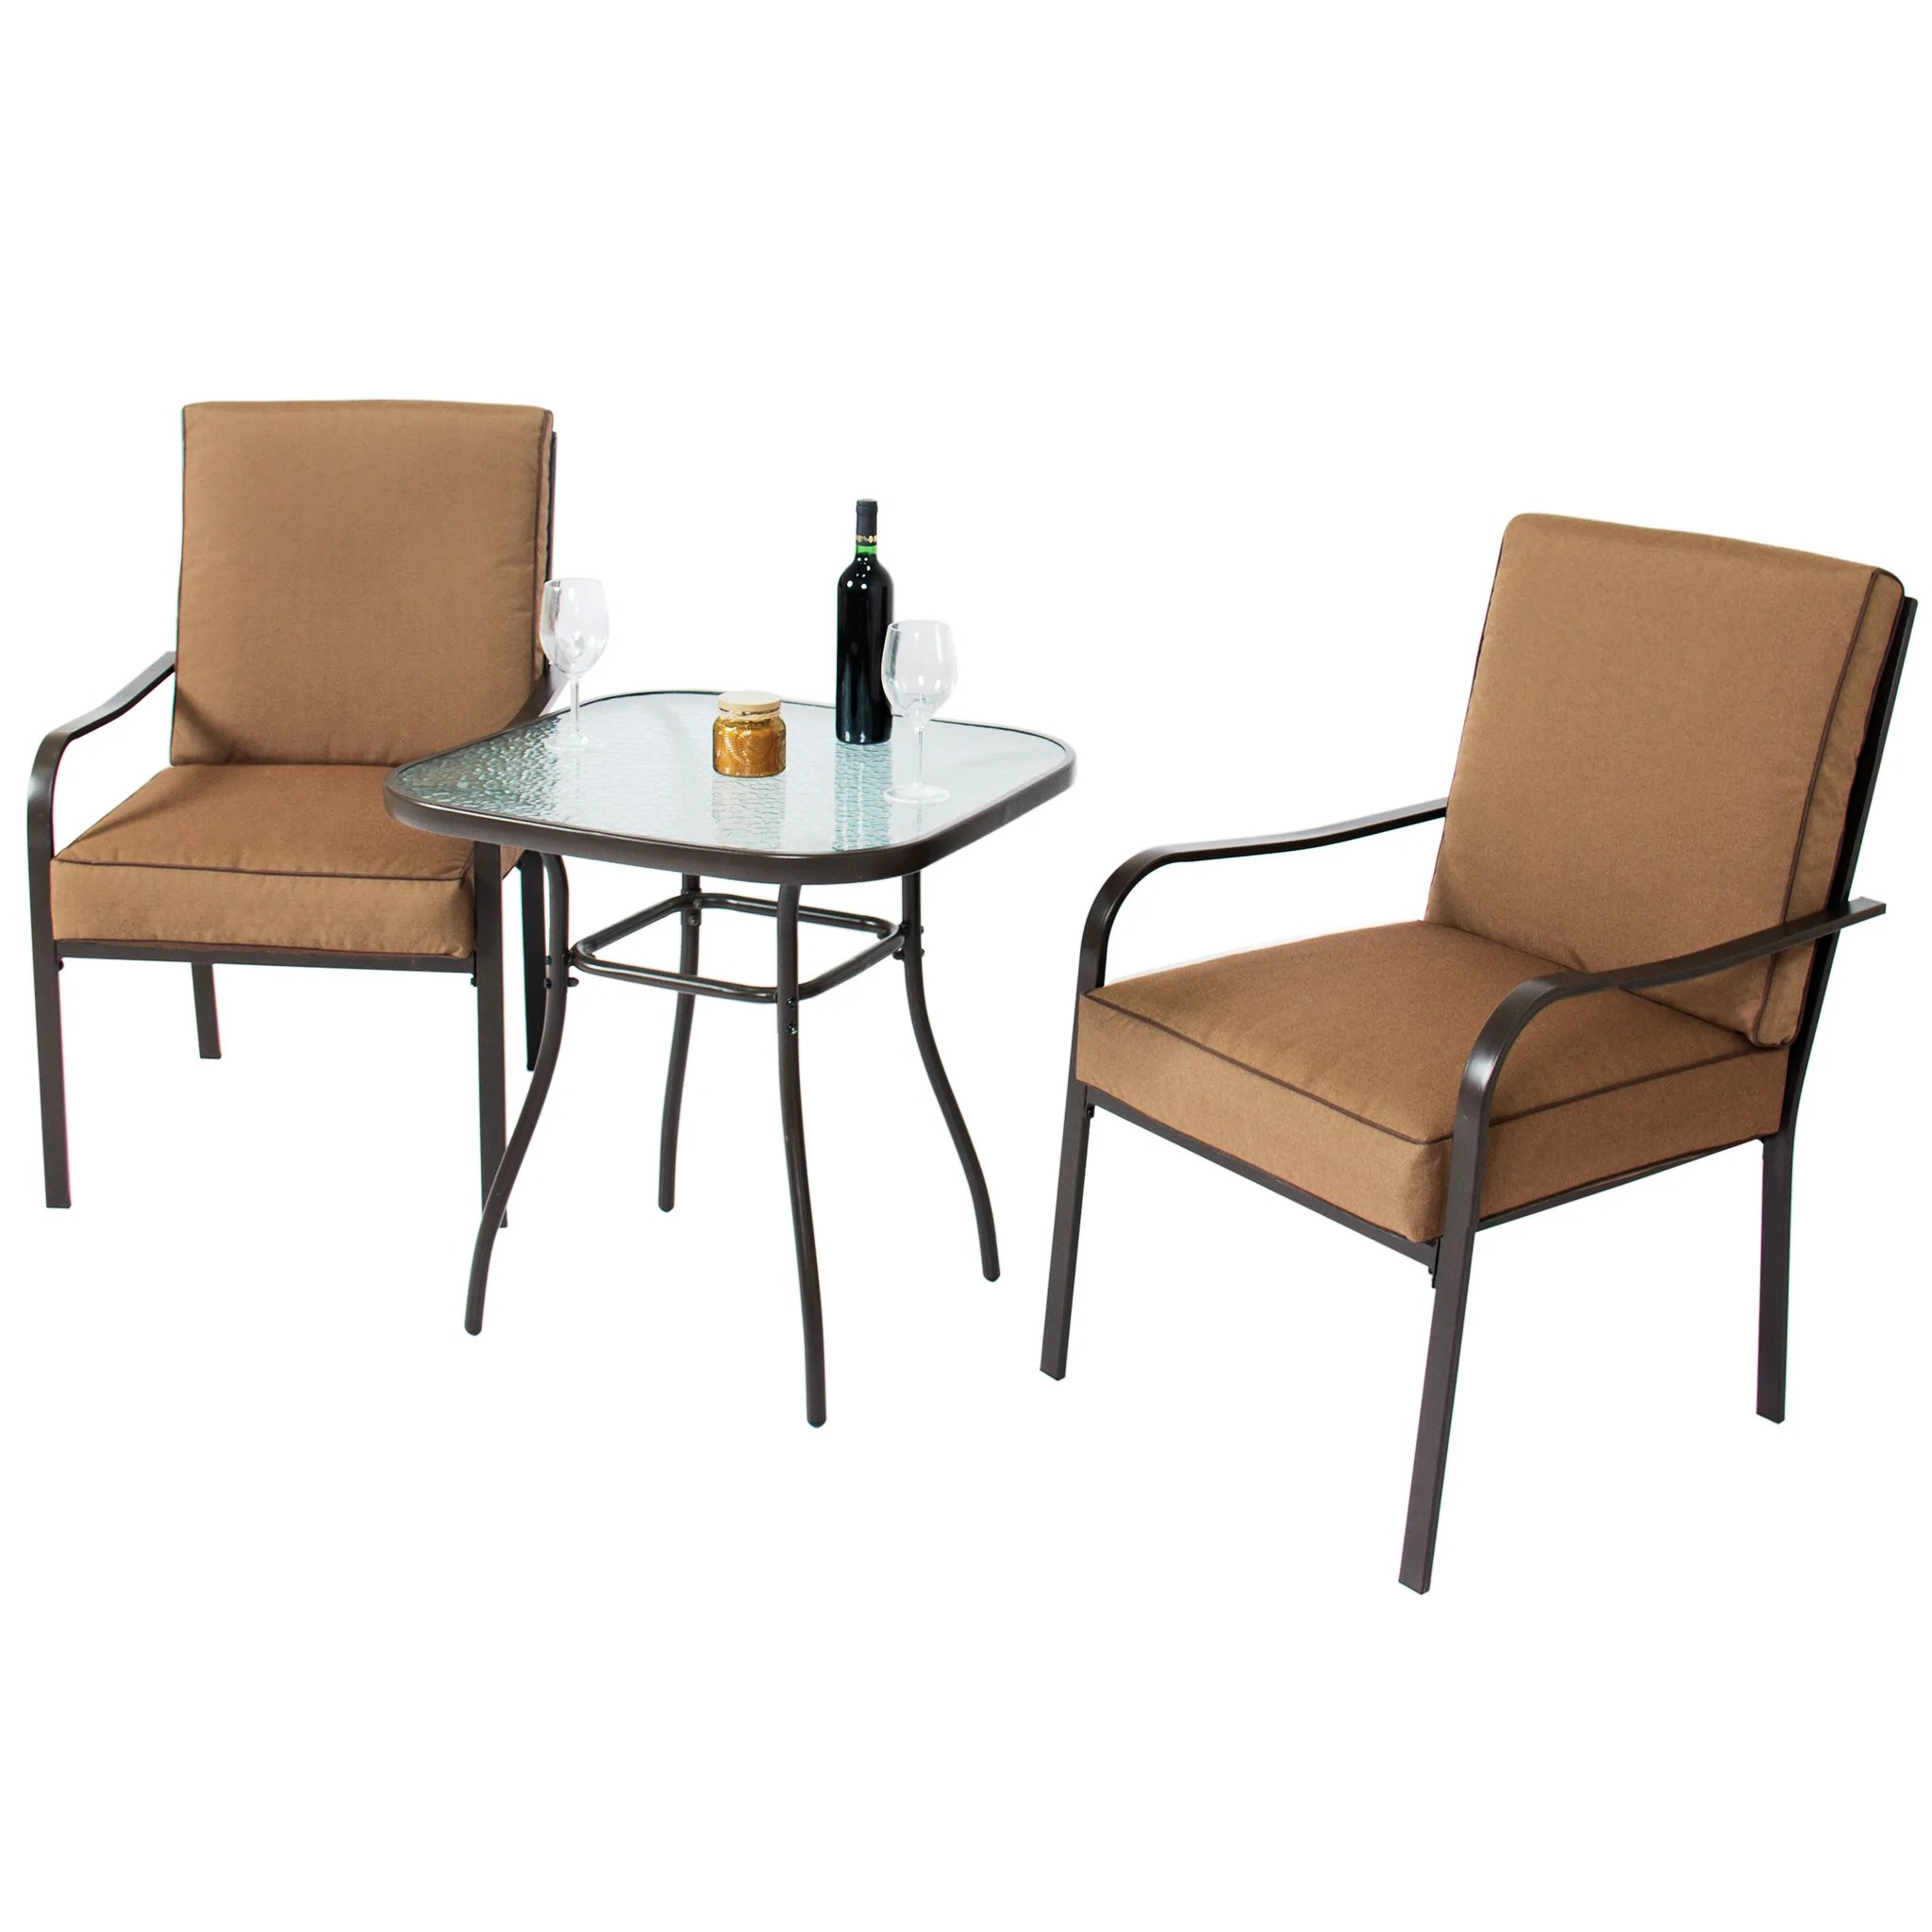 2 chairs and table patio set director chair covers diy 3 piece bistro w glass top